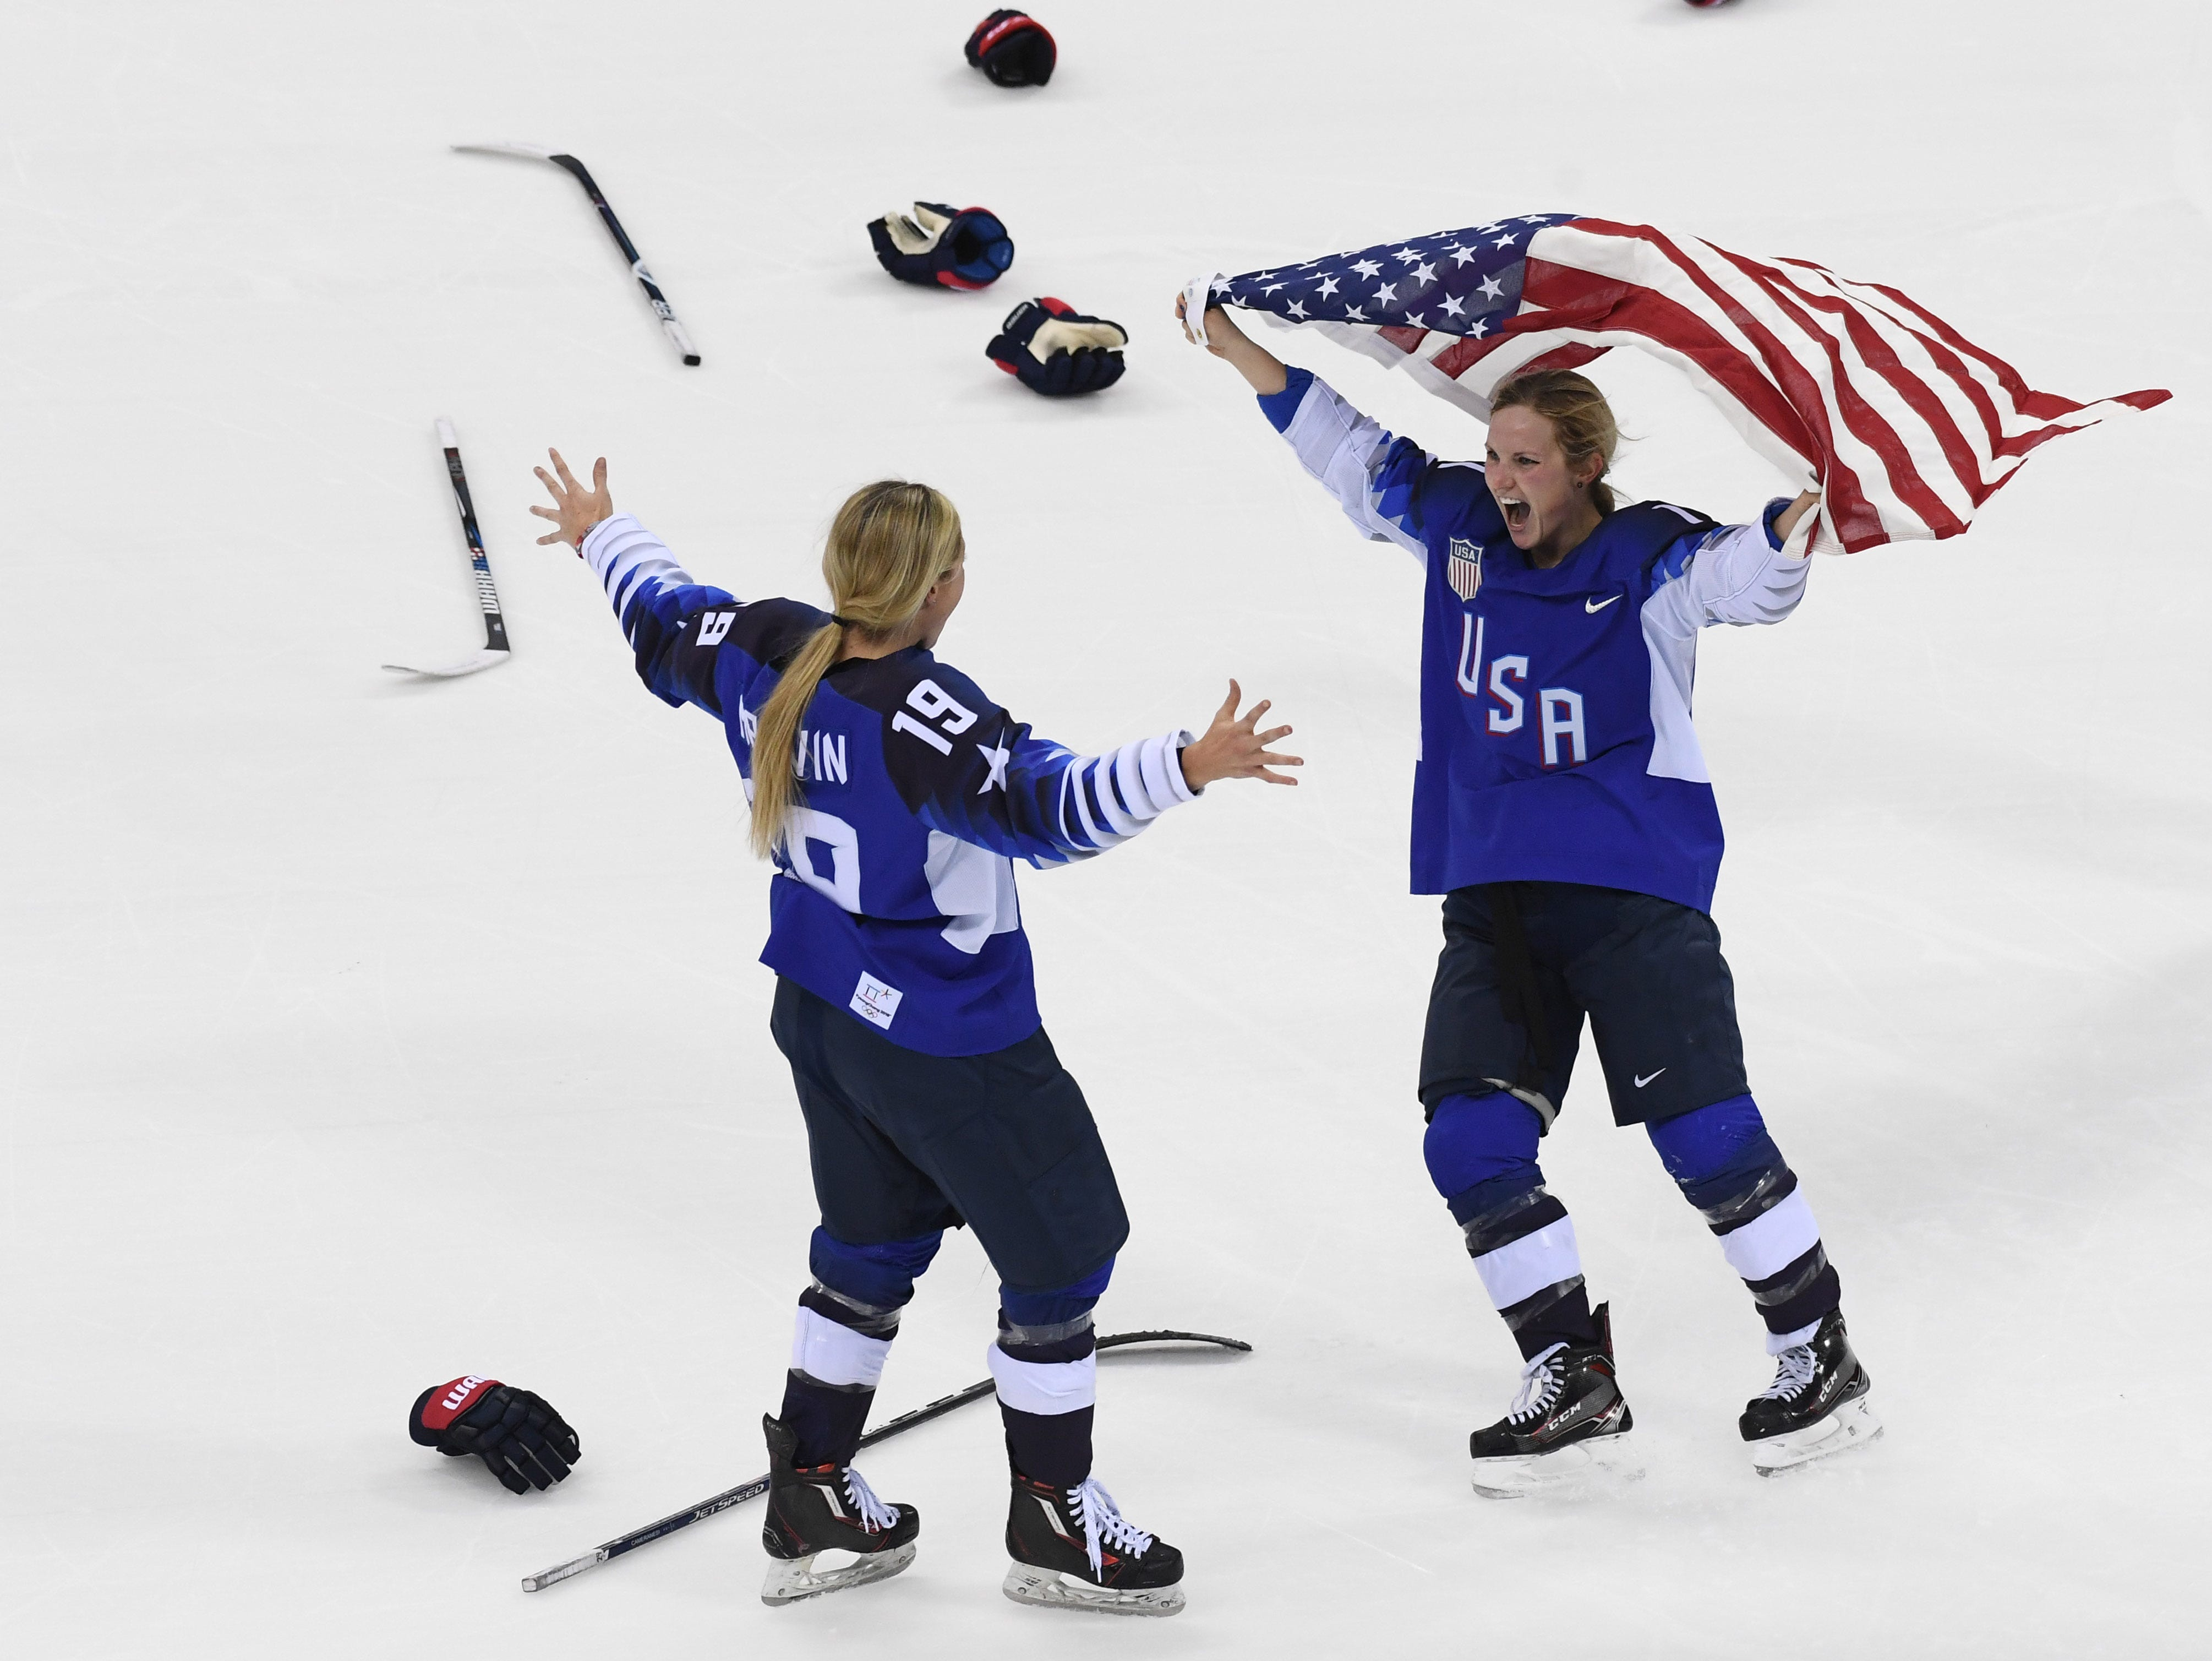 Feb. 22, 2018: The United States women's hockey team celebrates after defeating Canada in the gold medal match during the Pyeongchang 2018 Olympic Winter Games at Gangneung Hockey Centre.